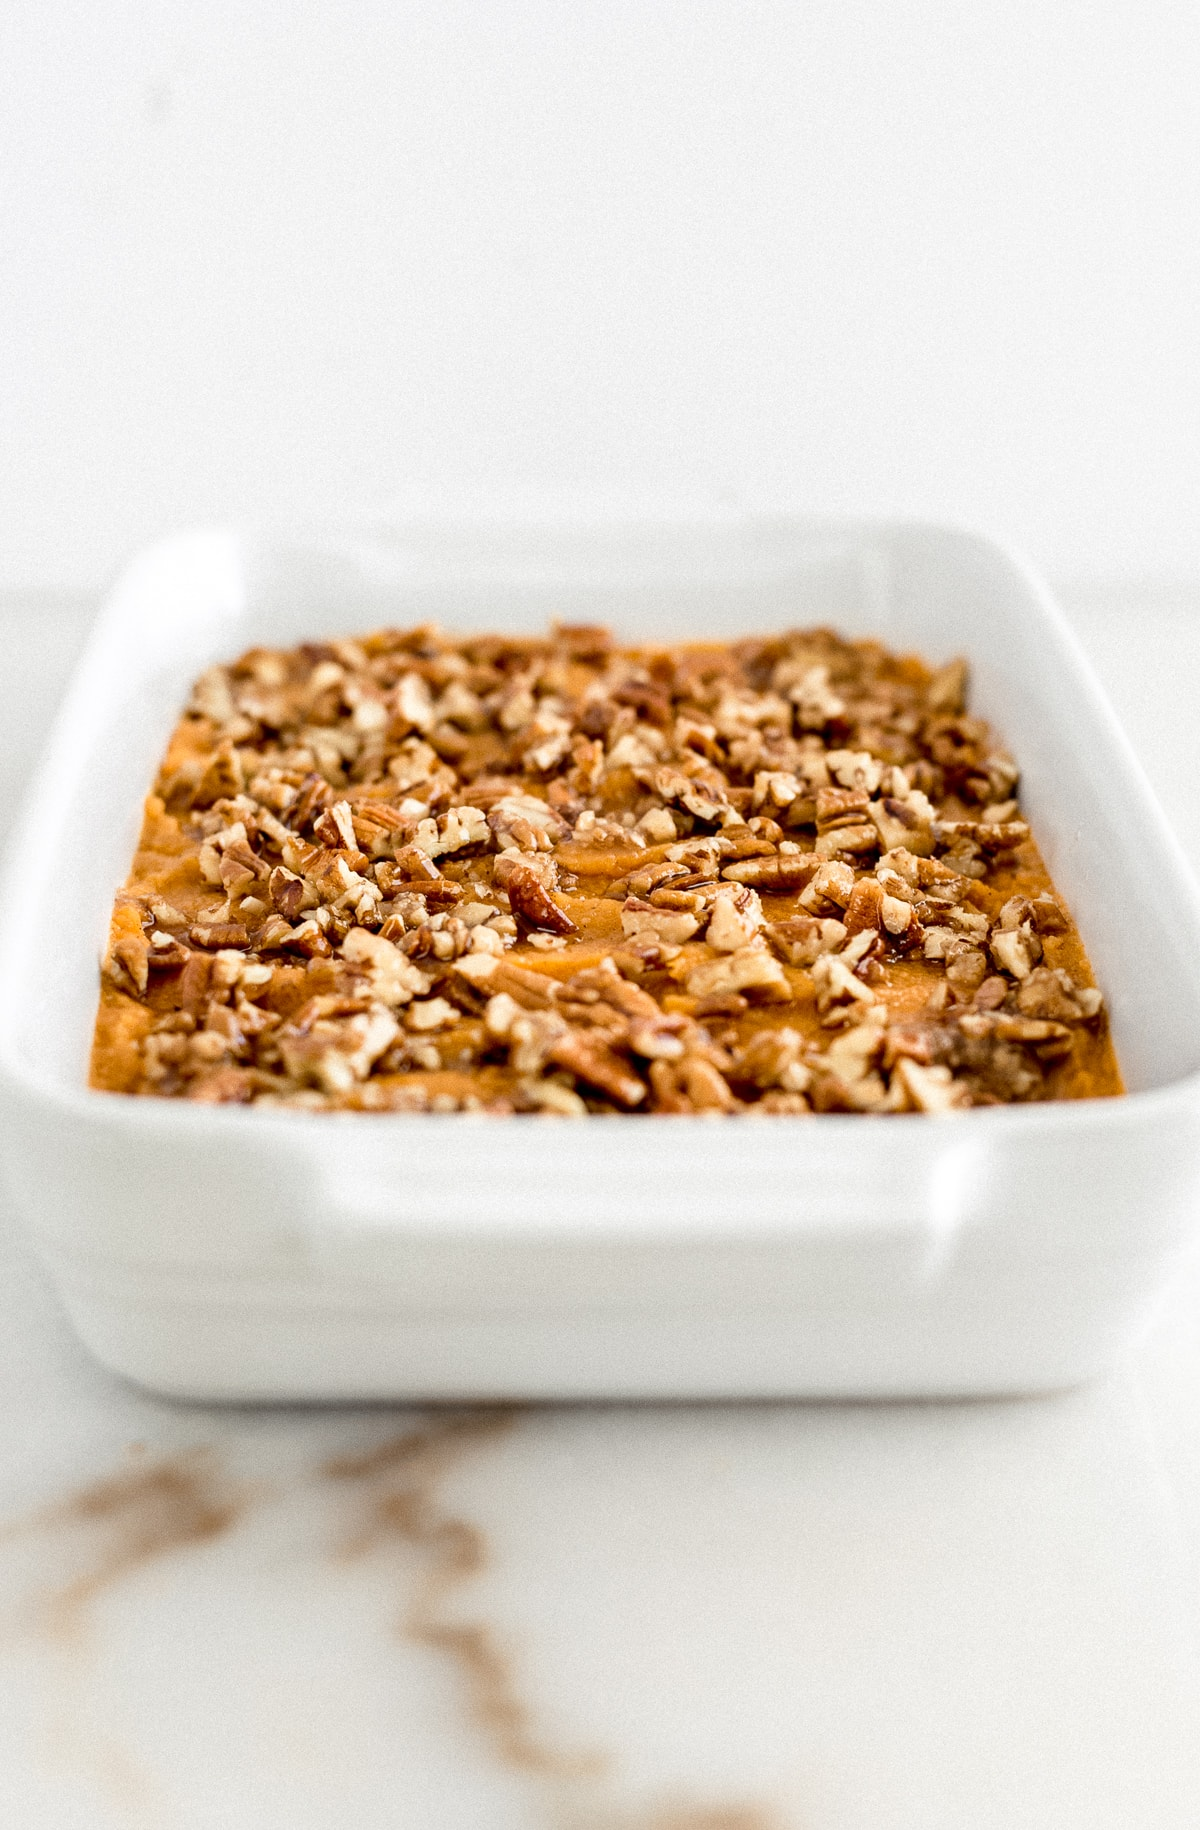 sweet potato casserole with pecan topping in a white dish before baking.